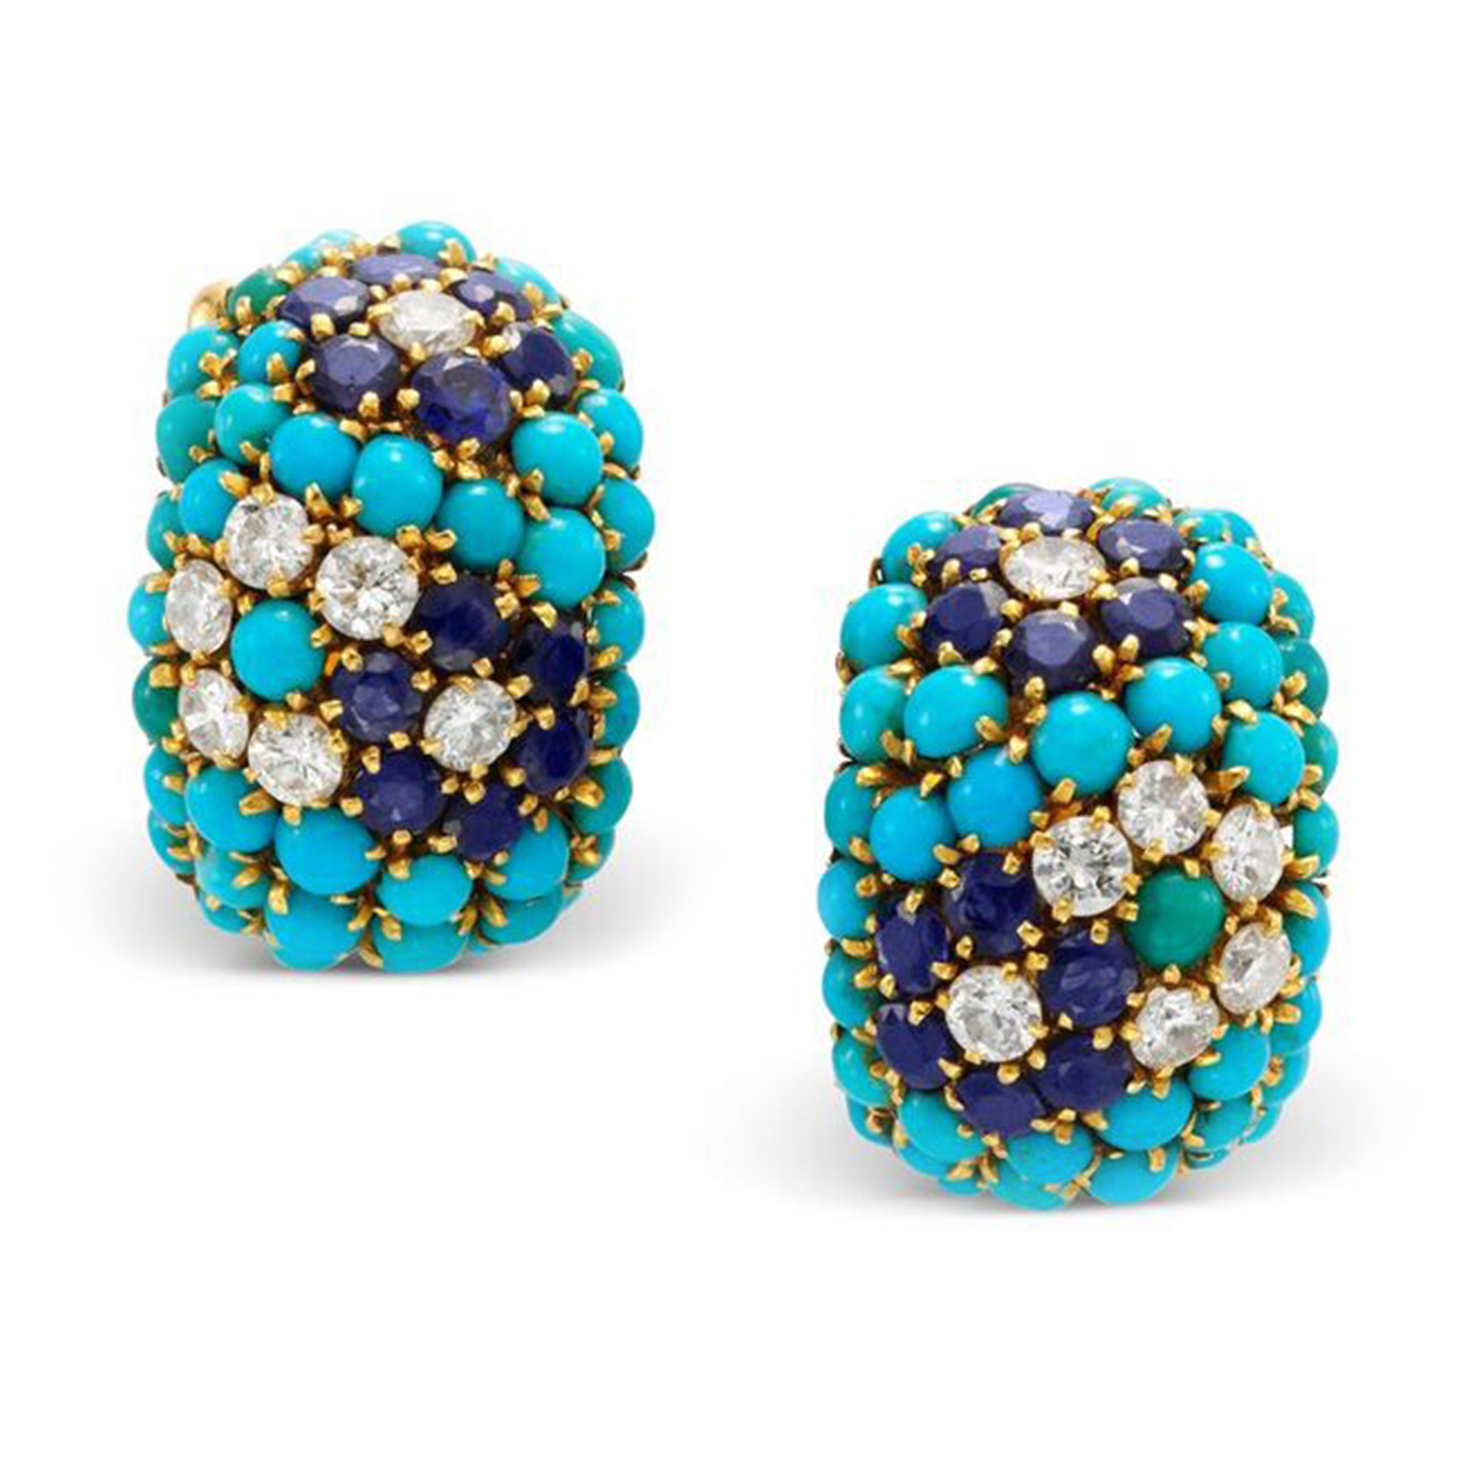 A Pair of Turquoise, Sapphire and Diamond Ear Clips, by Van Cleef & Arpels, circa 1960